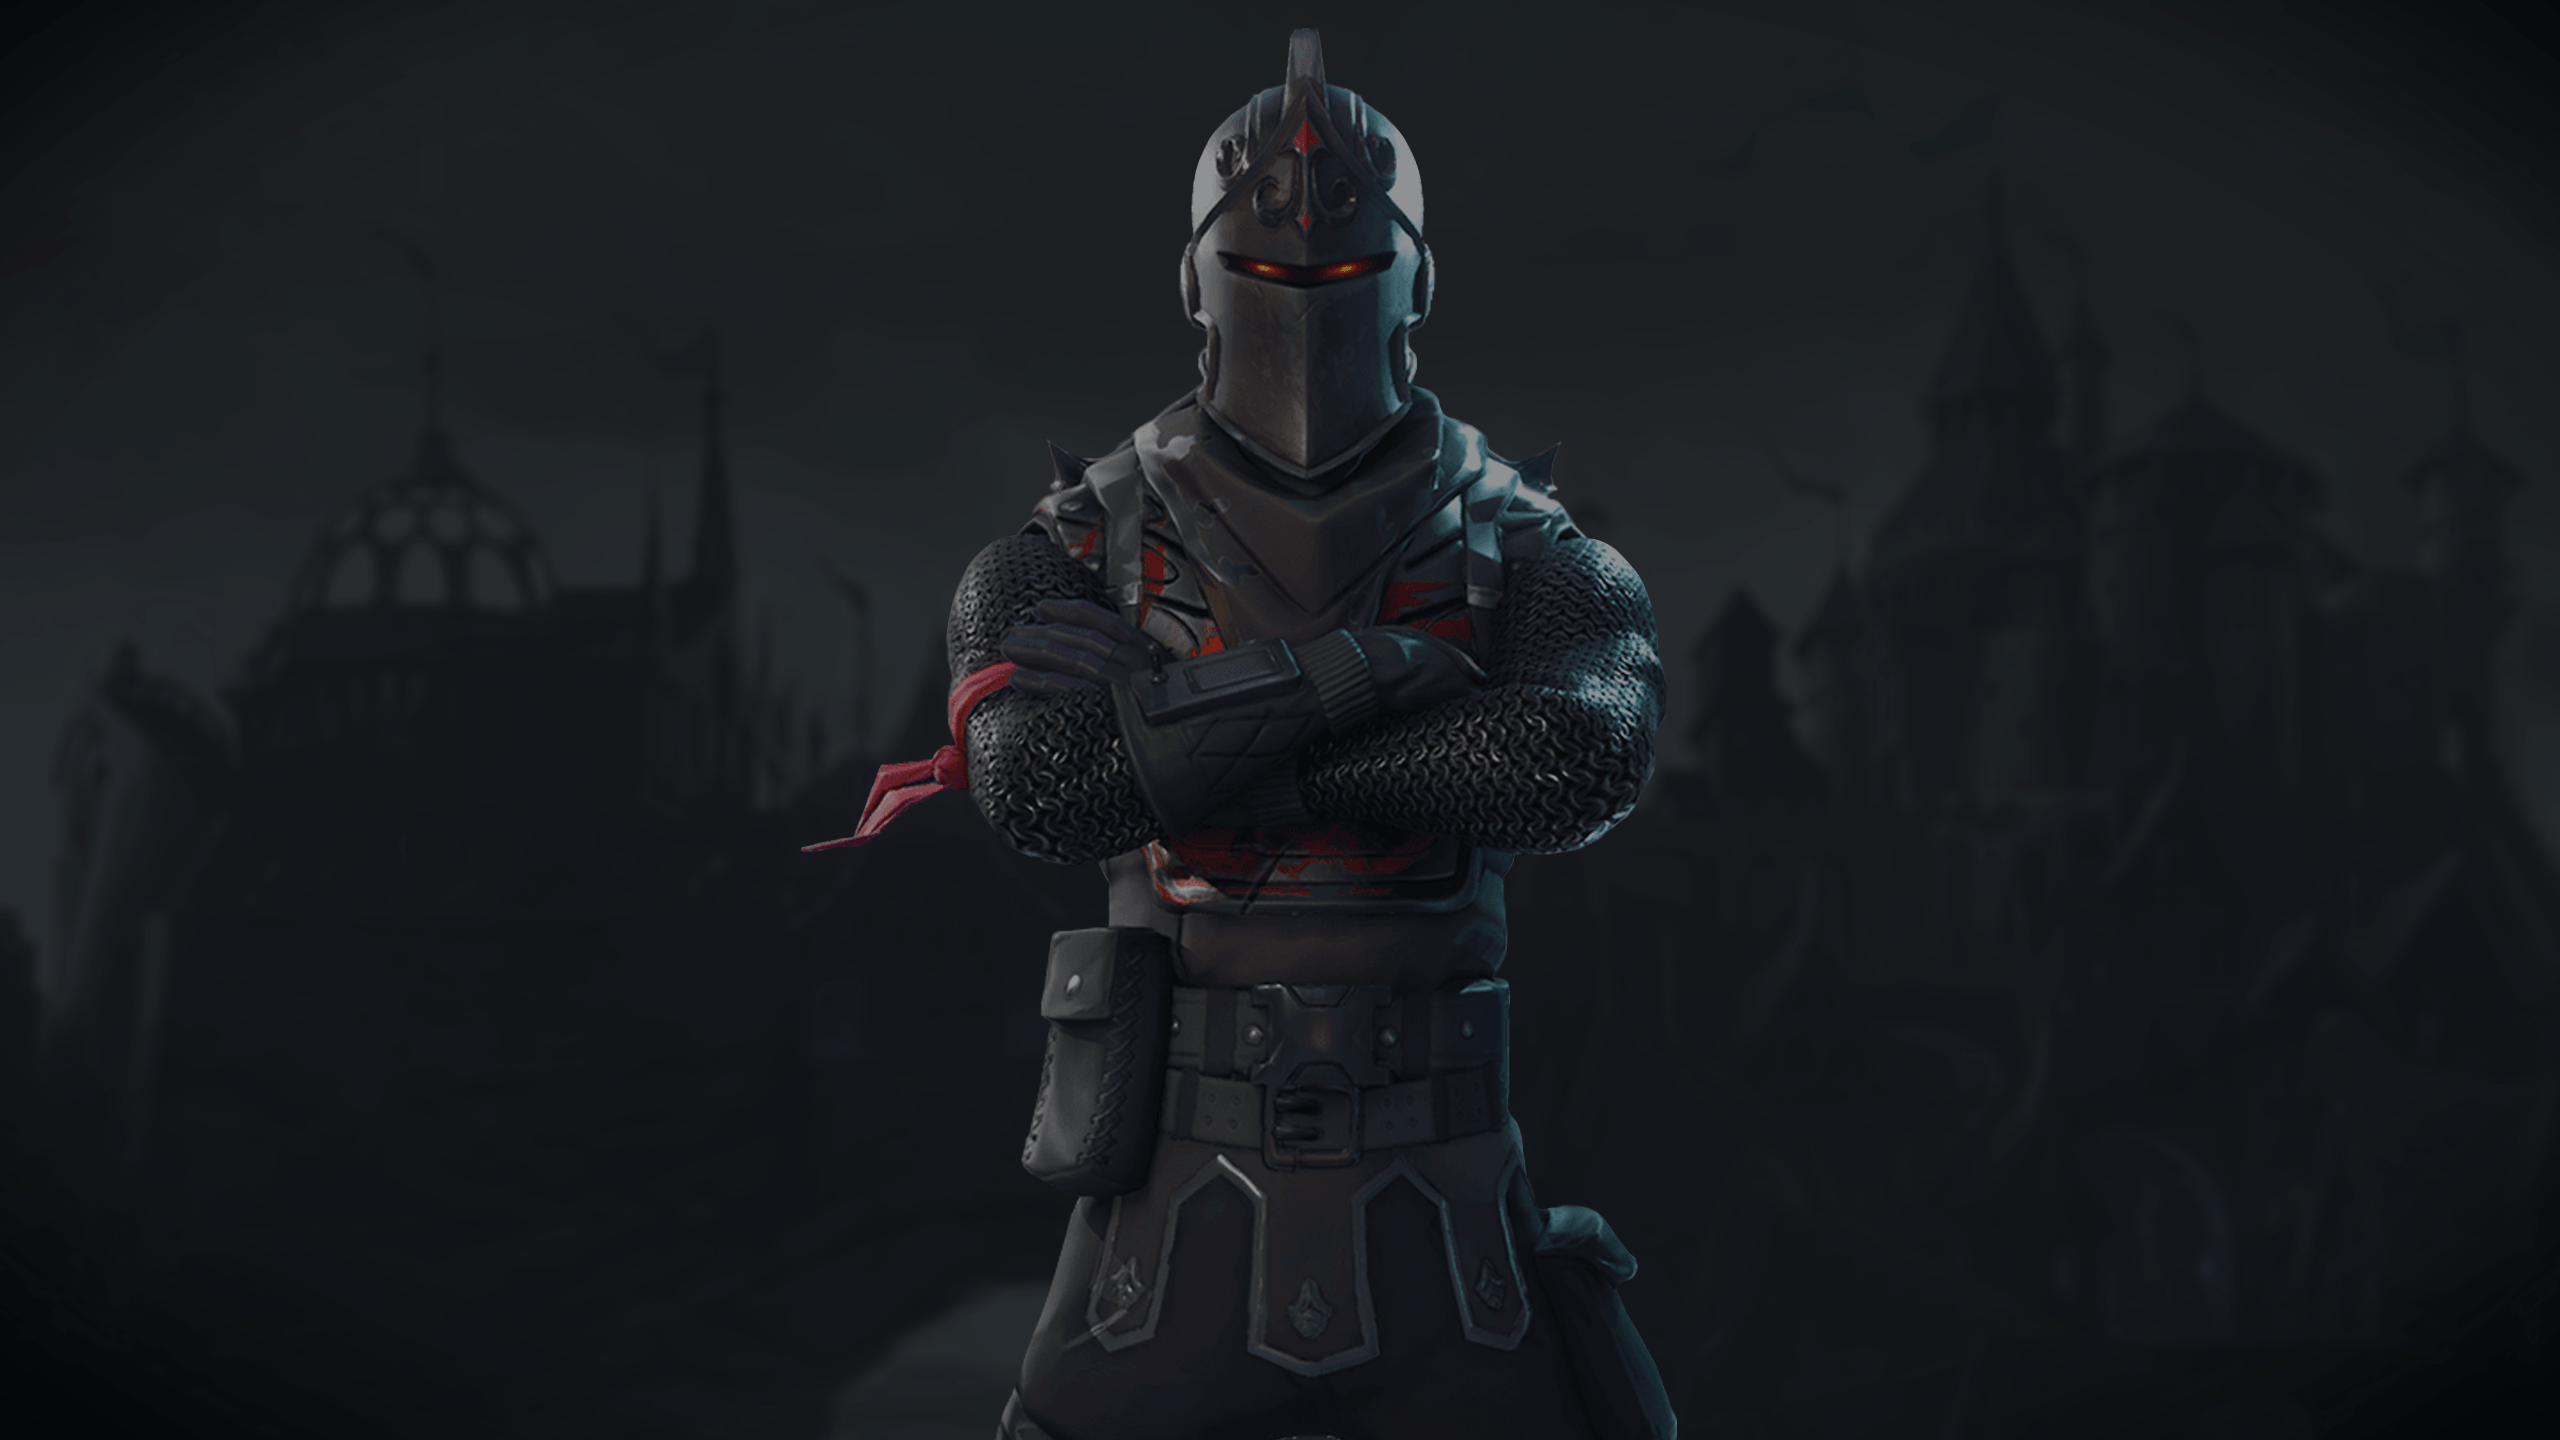 2560x1440 Black Knight Wallpaper For You All To Enjoy